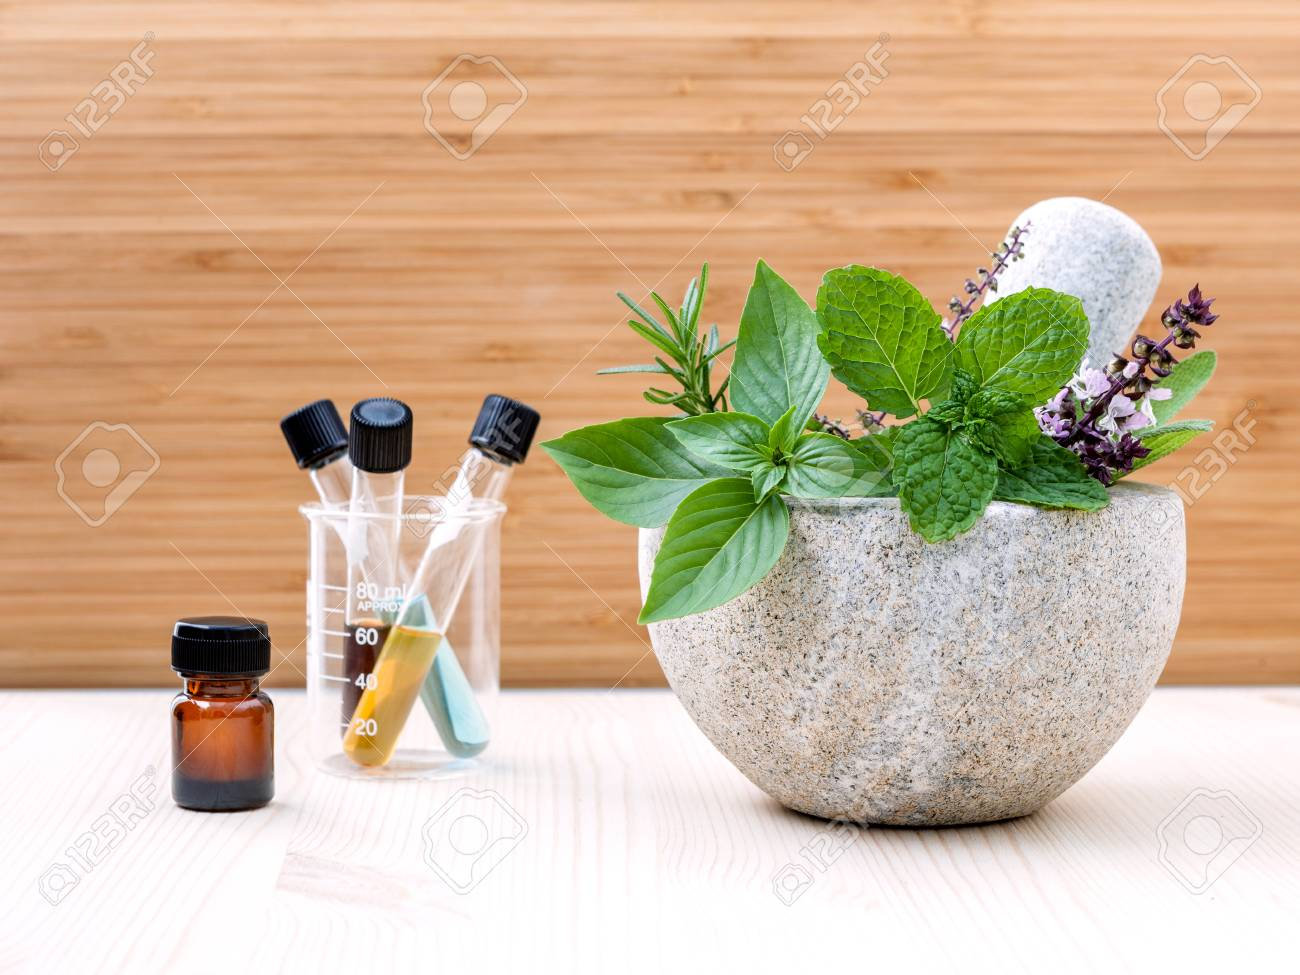 Alternative health care fresh herbs basil ,sage ,rosemary, mint and essential oil with mortar on wooden background. - 52945272